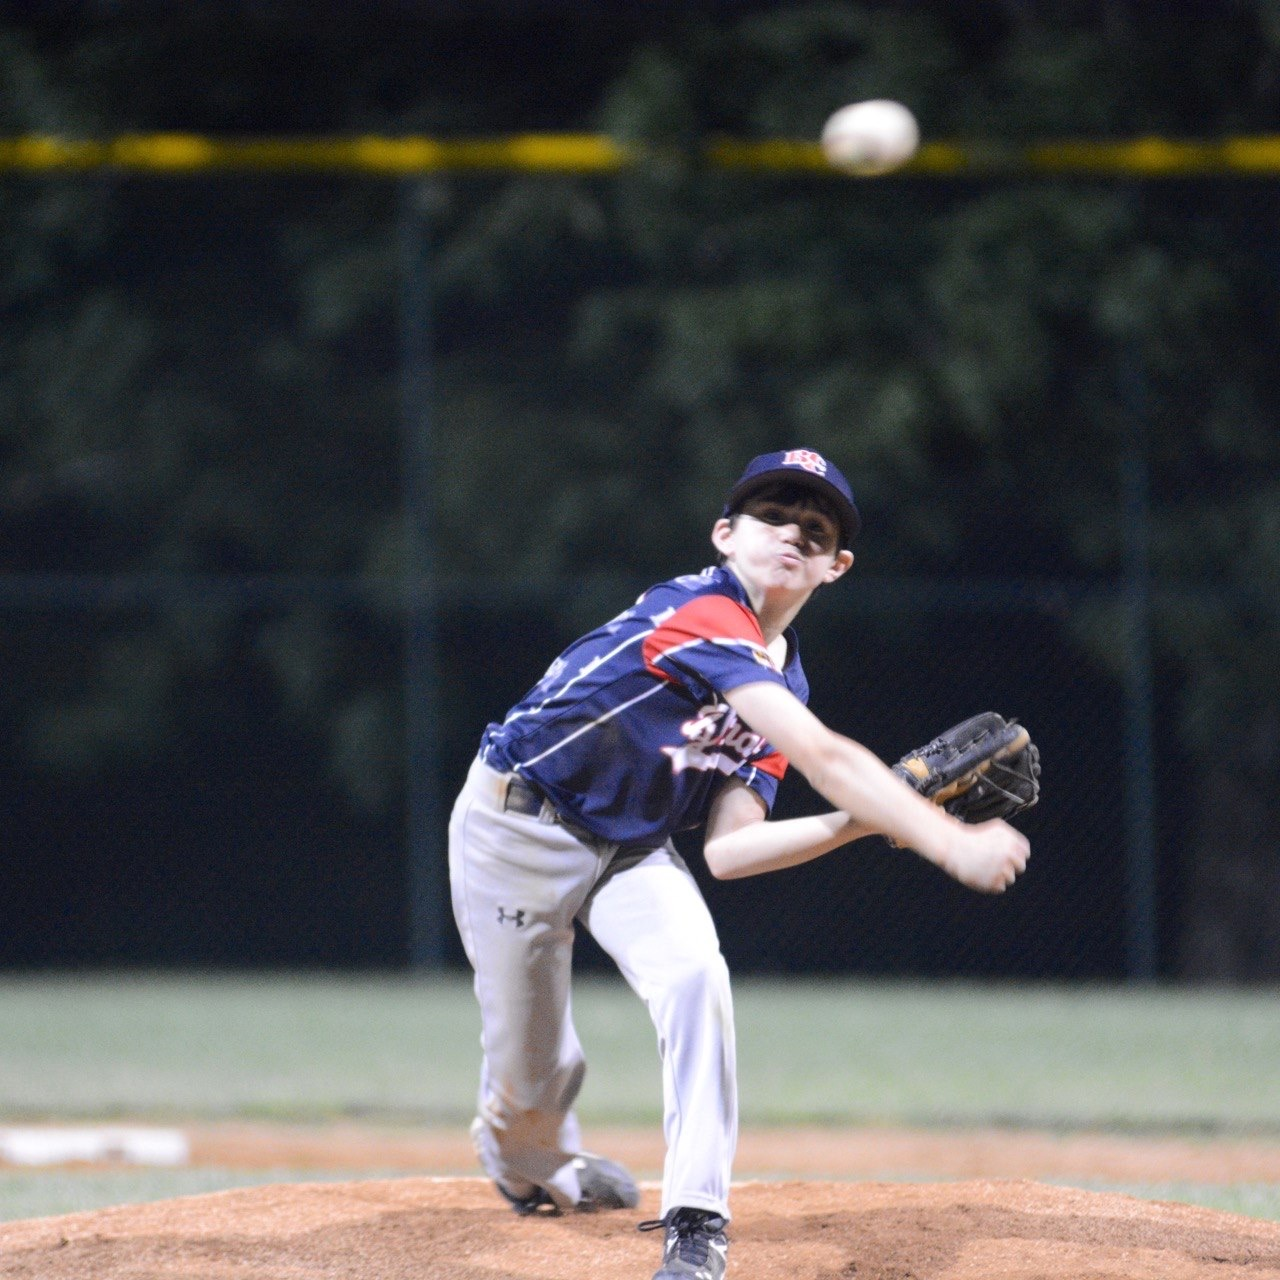 Freshman Zach Wisneski pitching at age 11, before his elbow tendonitis forced him to quit baseball.